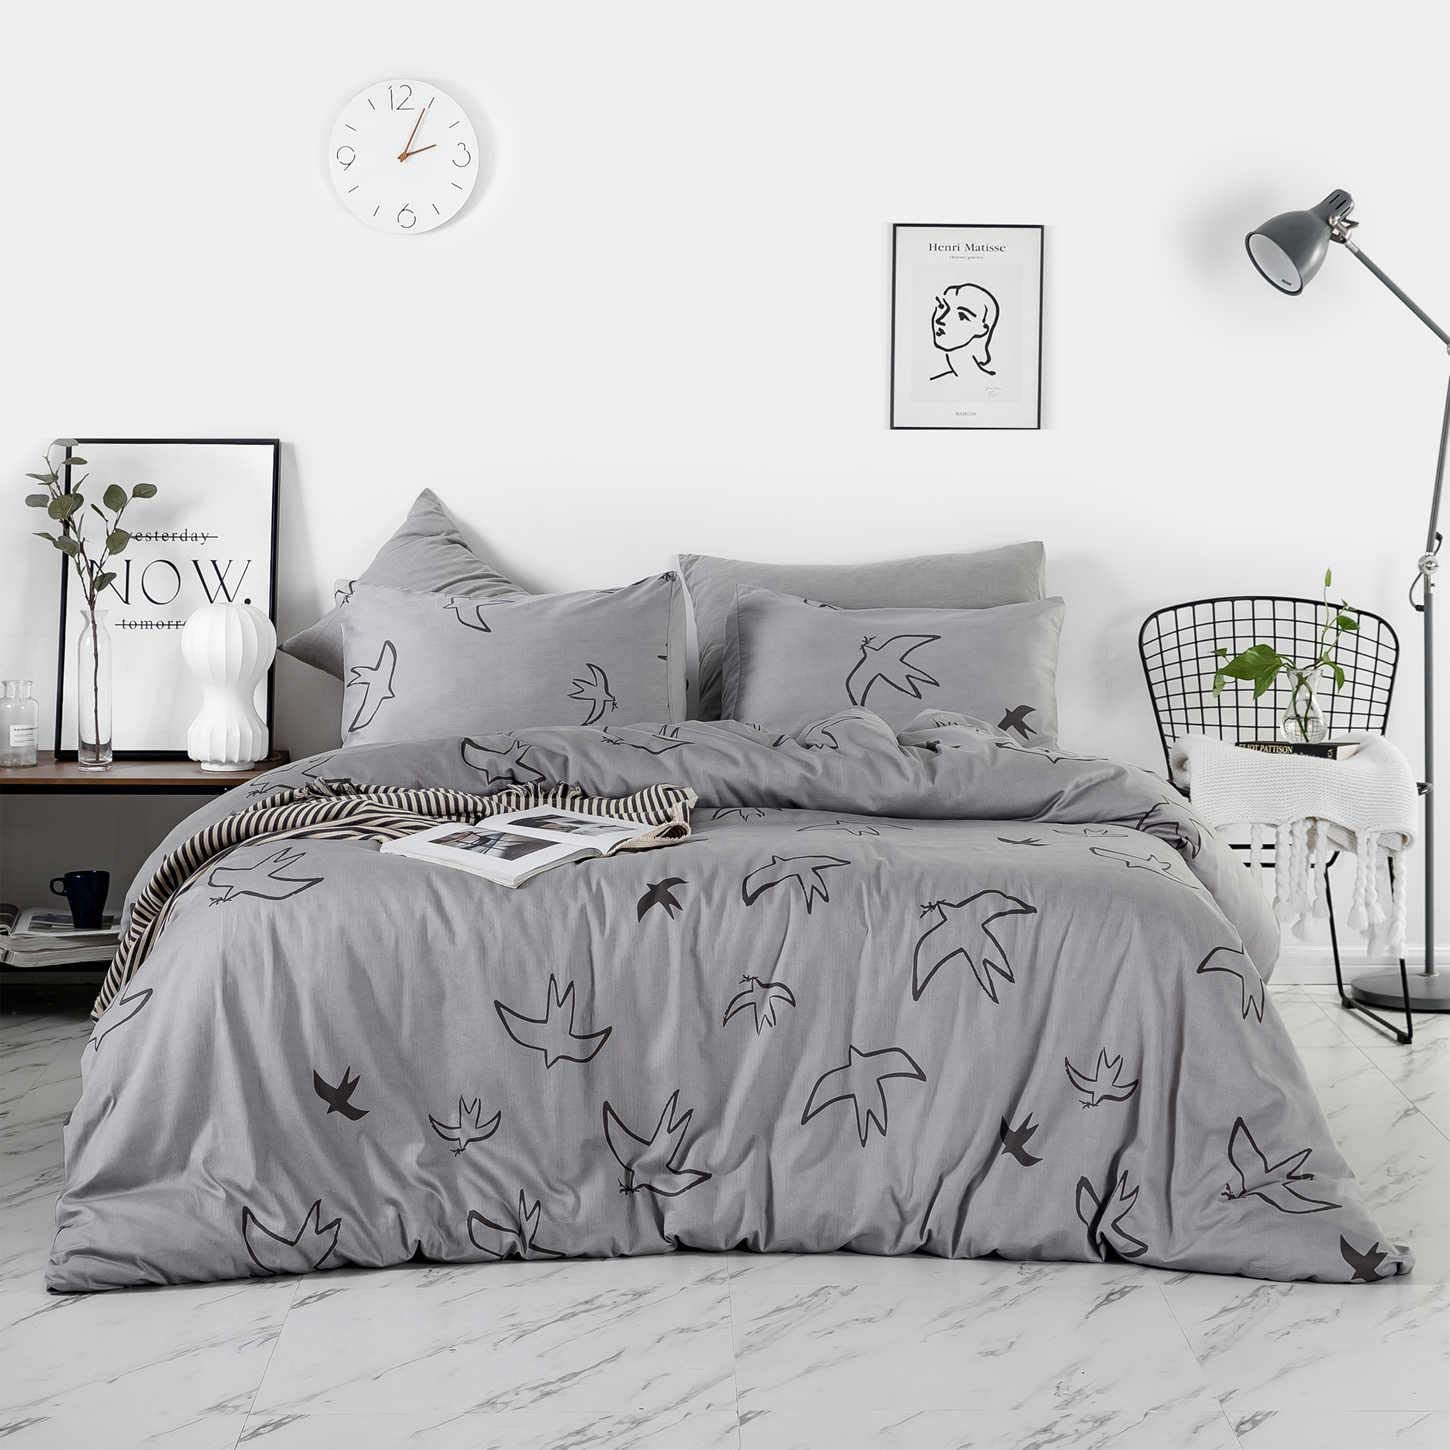 SUSYBAO 3 Piece Duvet Cover Set 100% Egyptian Cotton King Size Grey Animal Print Bedding Set 1 Seagull Birds Pattern Duvet Cover with Zipper Ties 2 Pillowcases Luxury Quality Ultra Soft Breathable